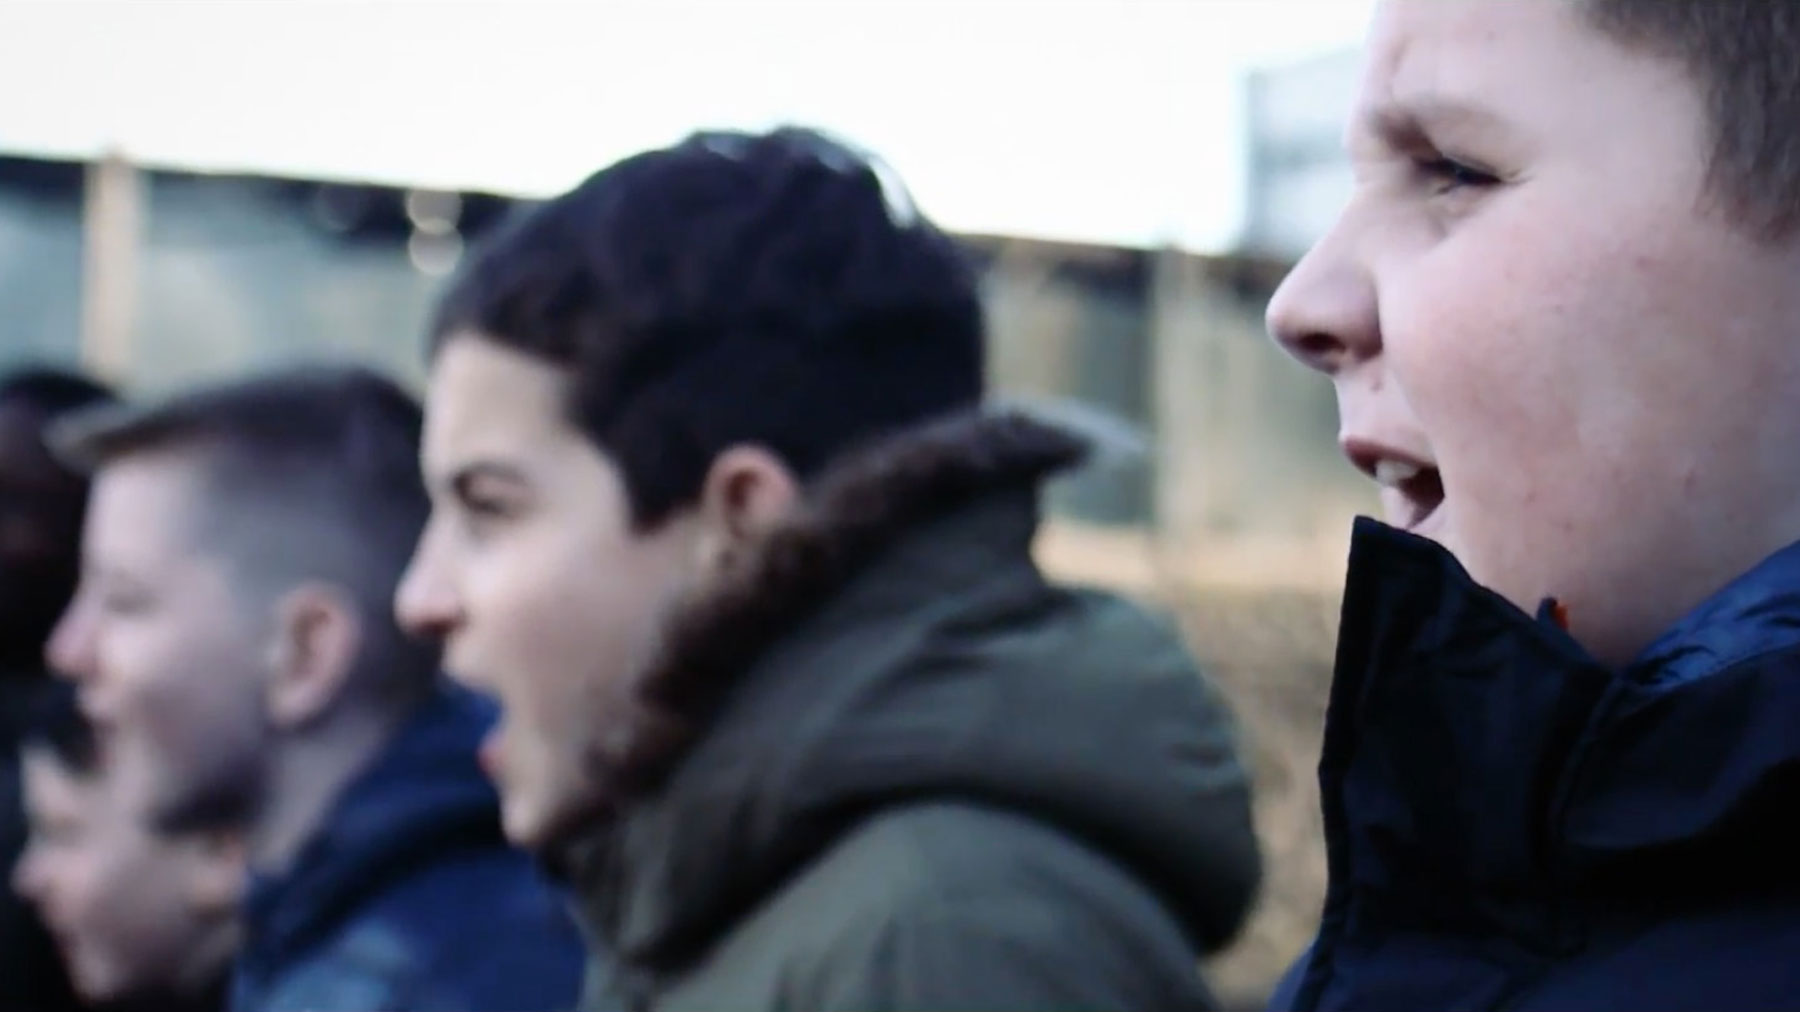 The First Was A Boy - Directed by Shaun Dunne